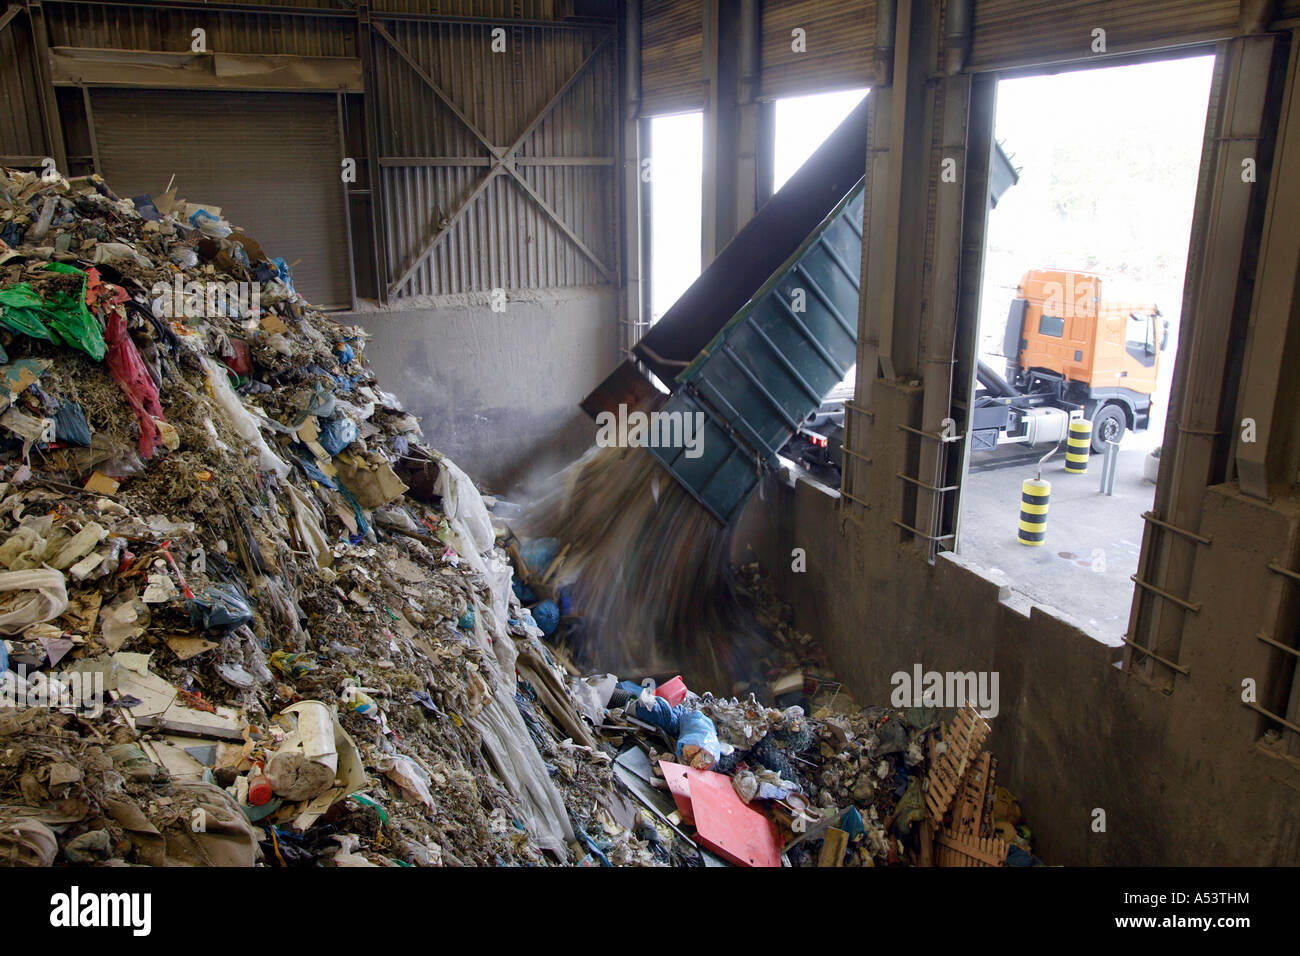 Pure Moscow garbage 14